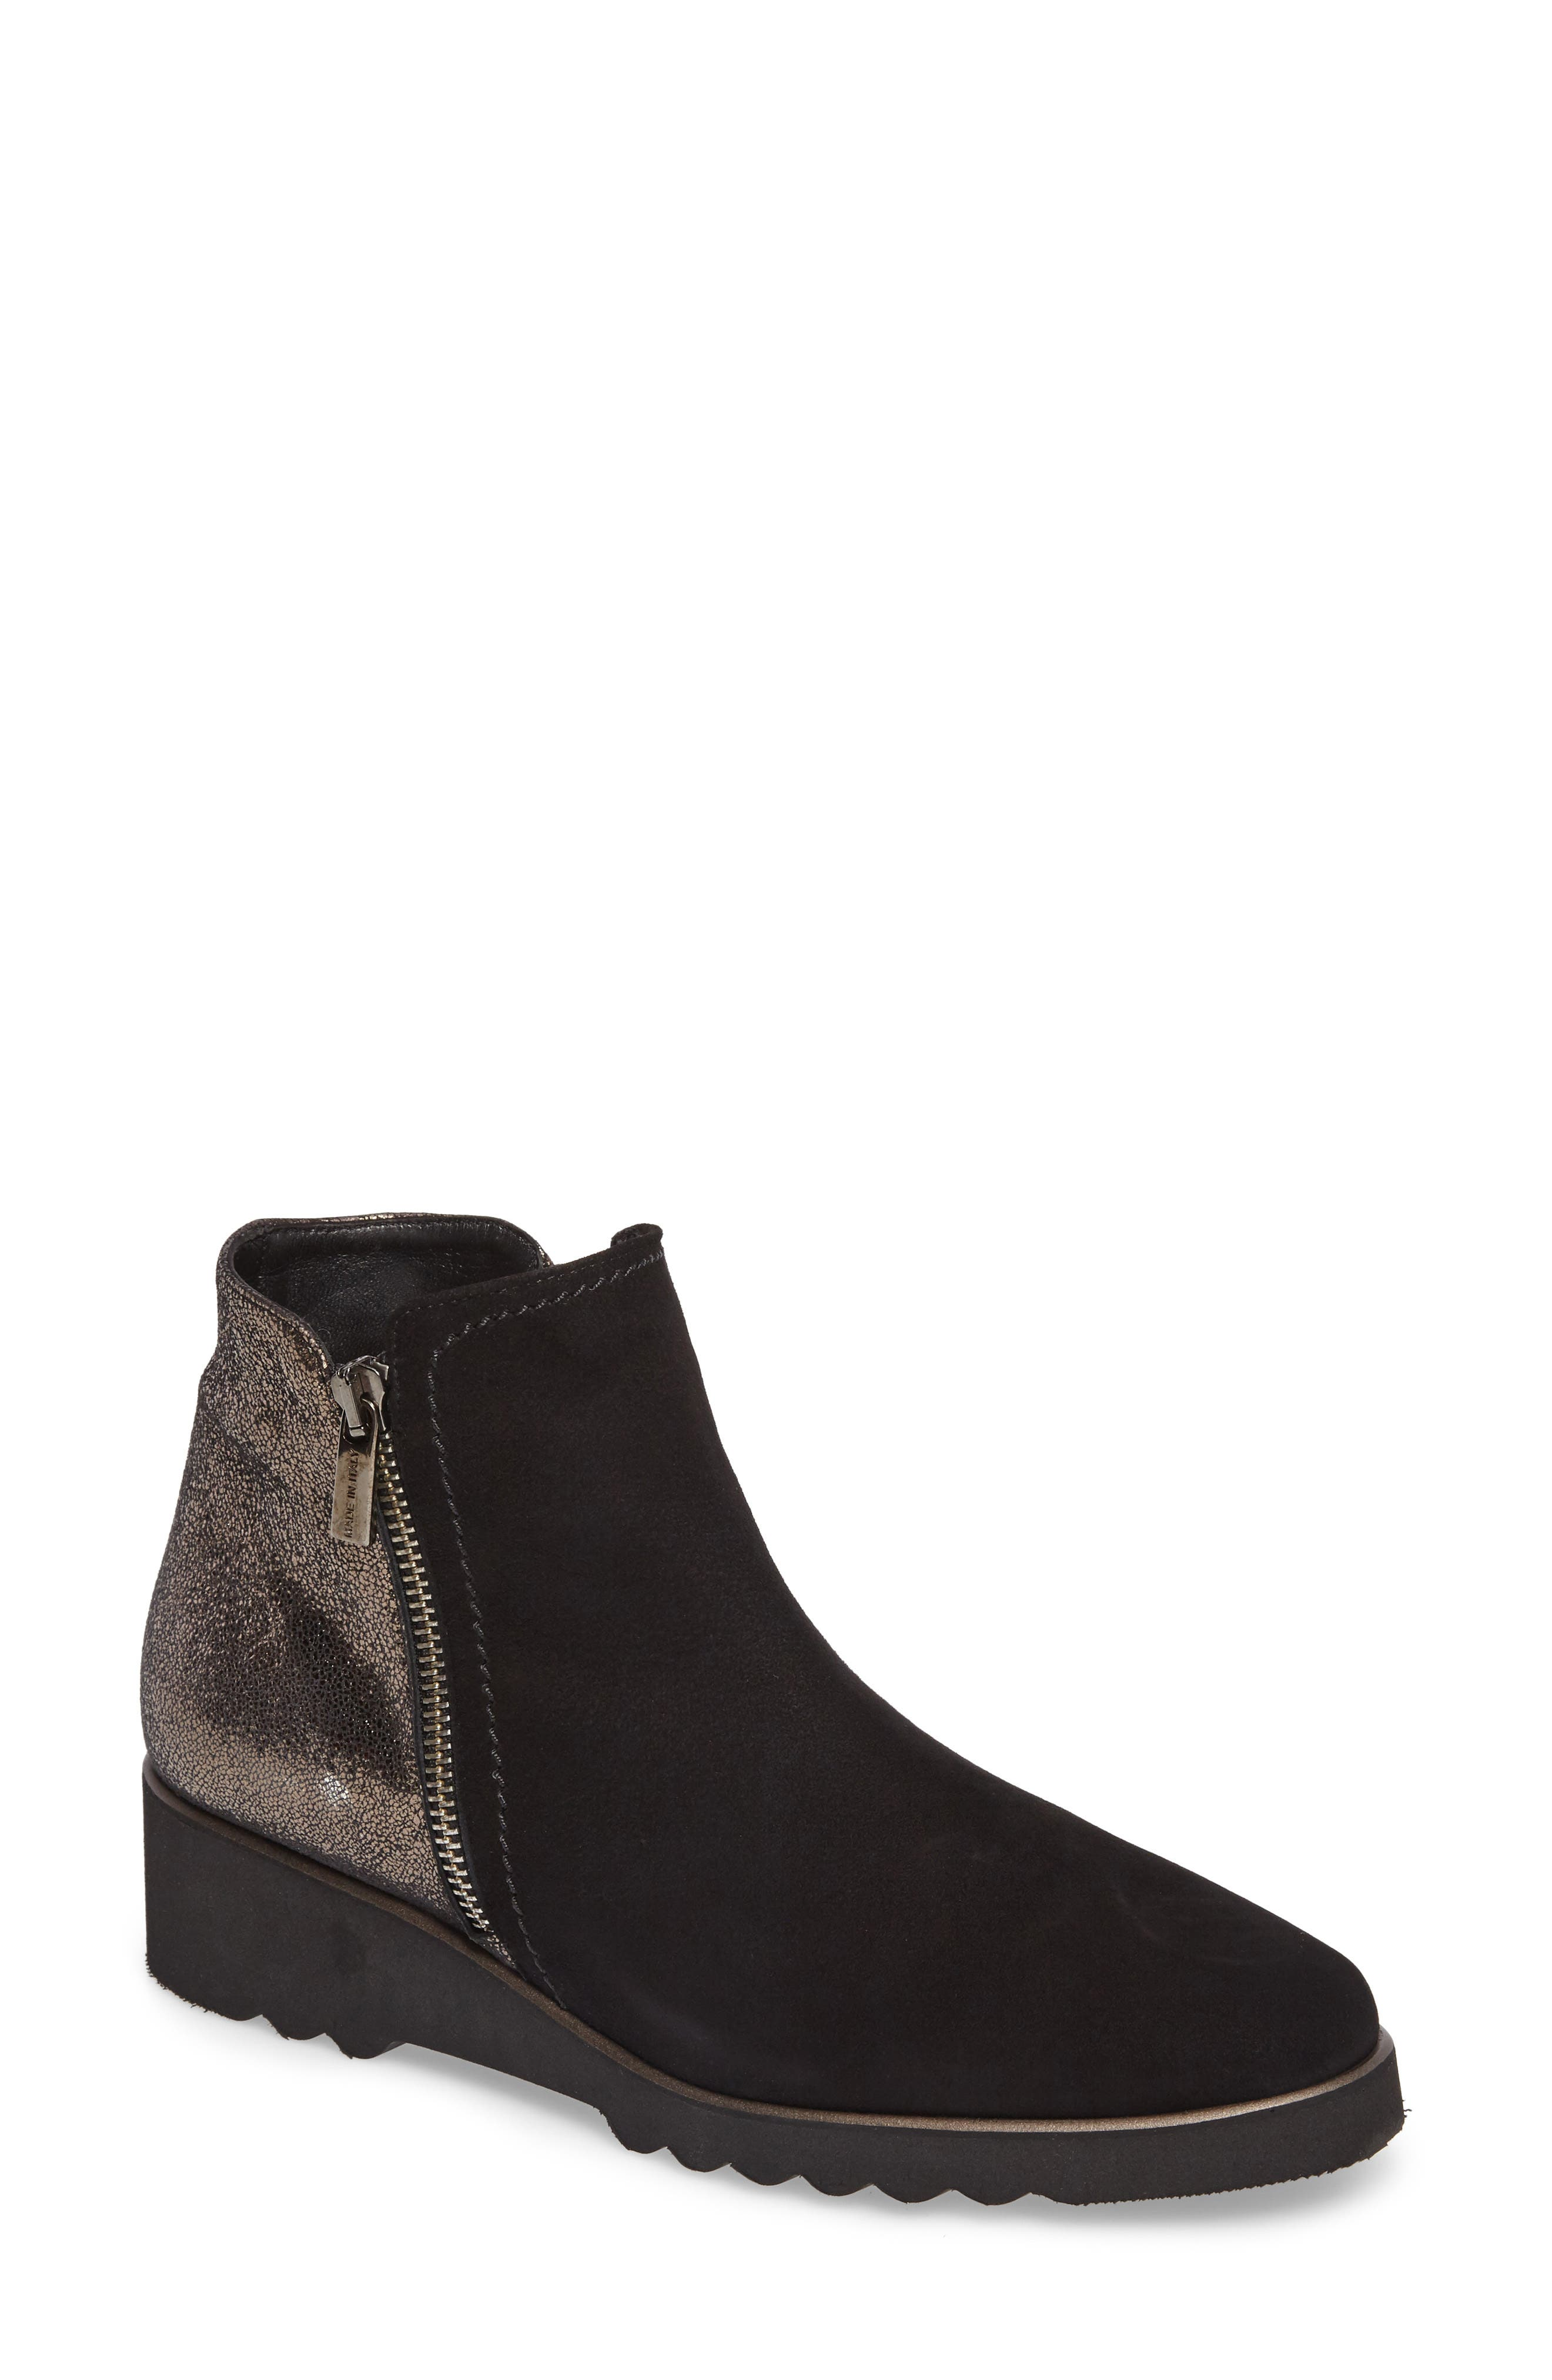 Addie Wedge Bootie,                         Main,                         color,